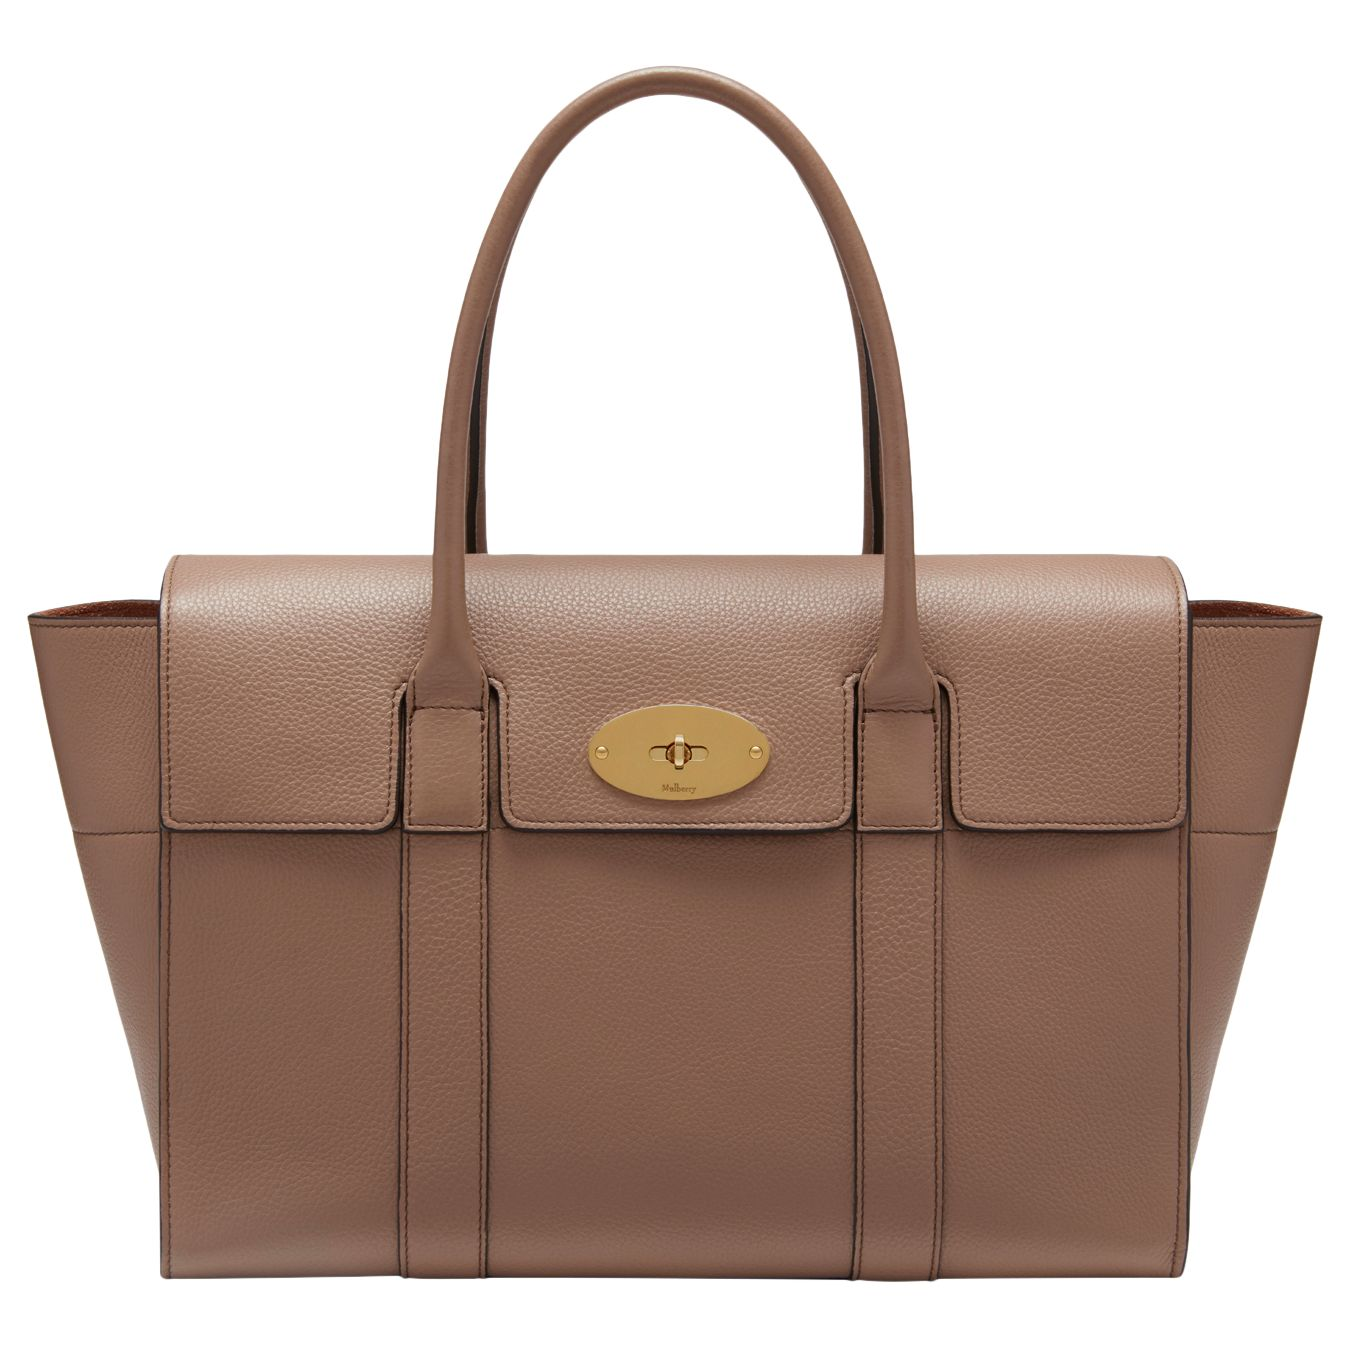 283146c477 Mulberry Bayswater New Classic Natural Grain Leather Bag